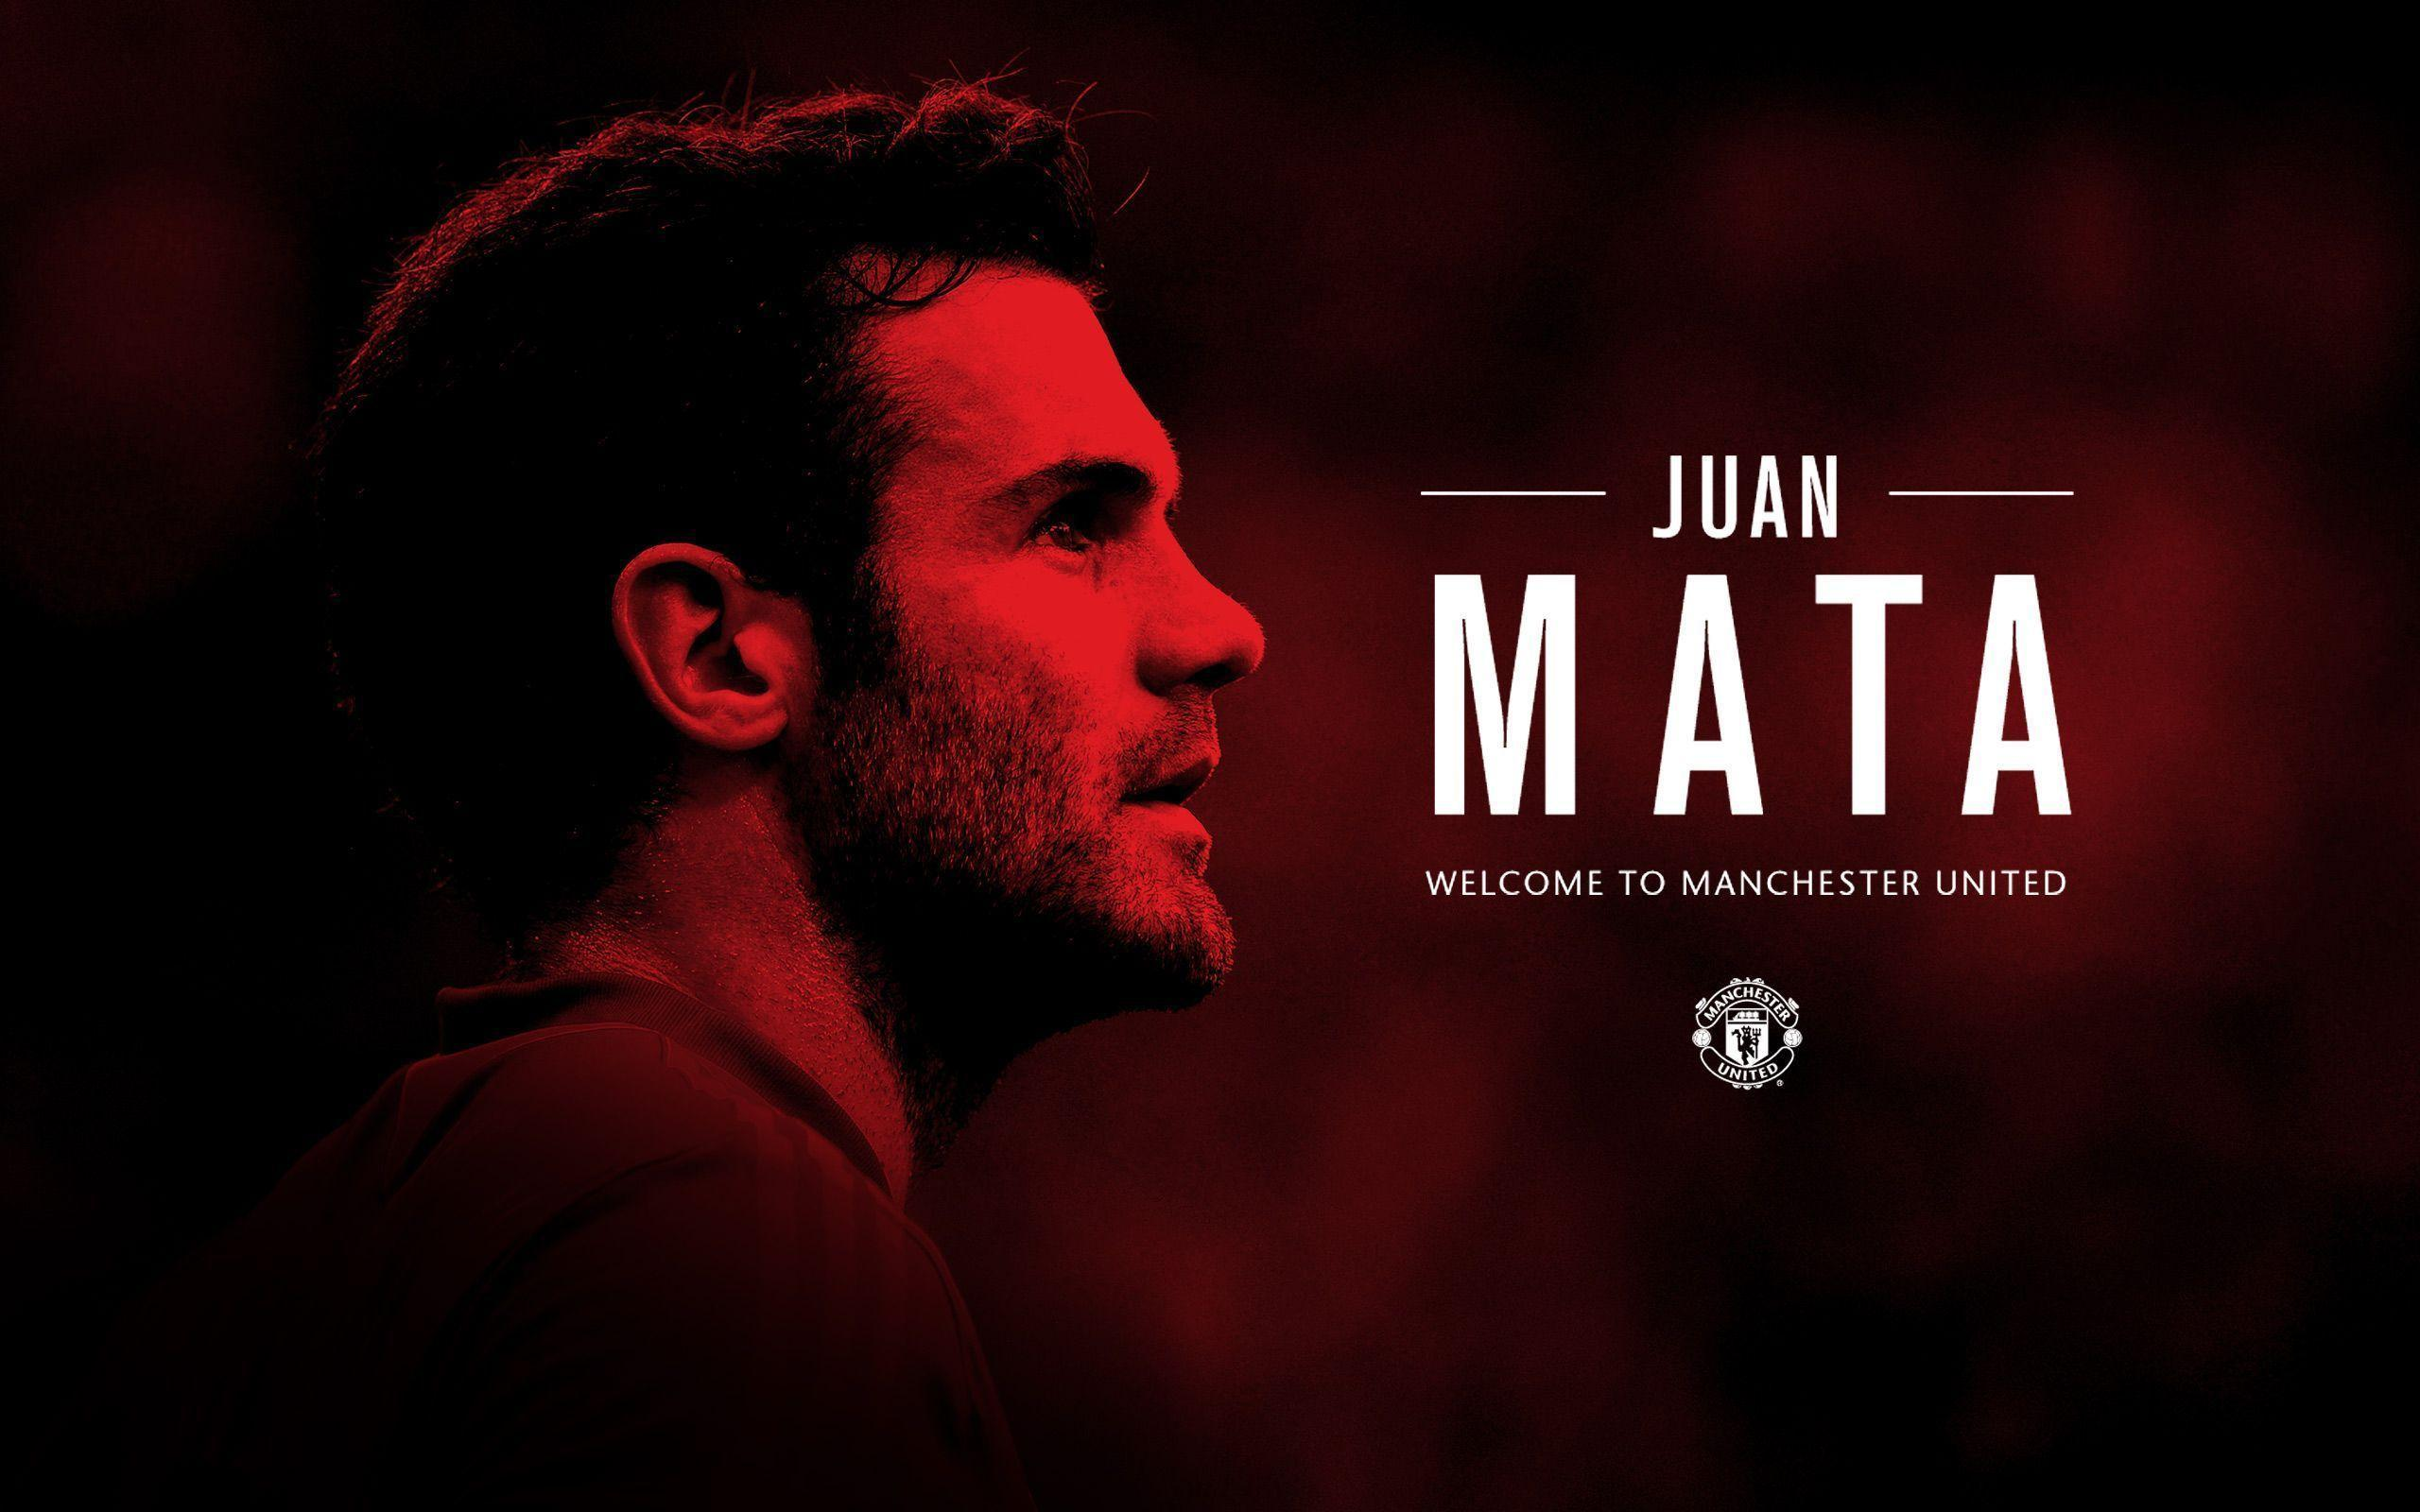 Man Utd Wallpapers Group (78+)